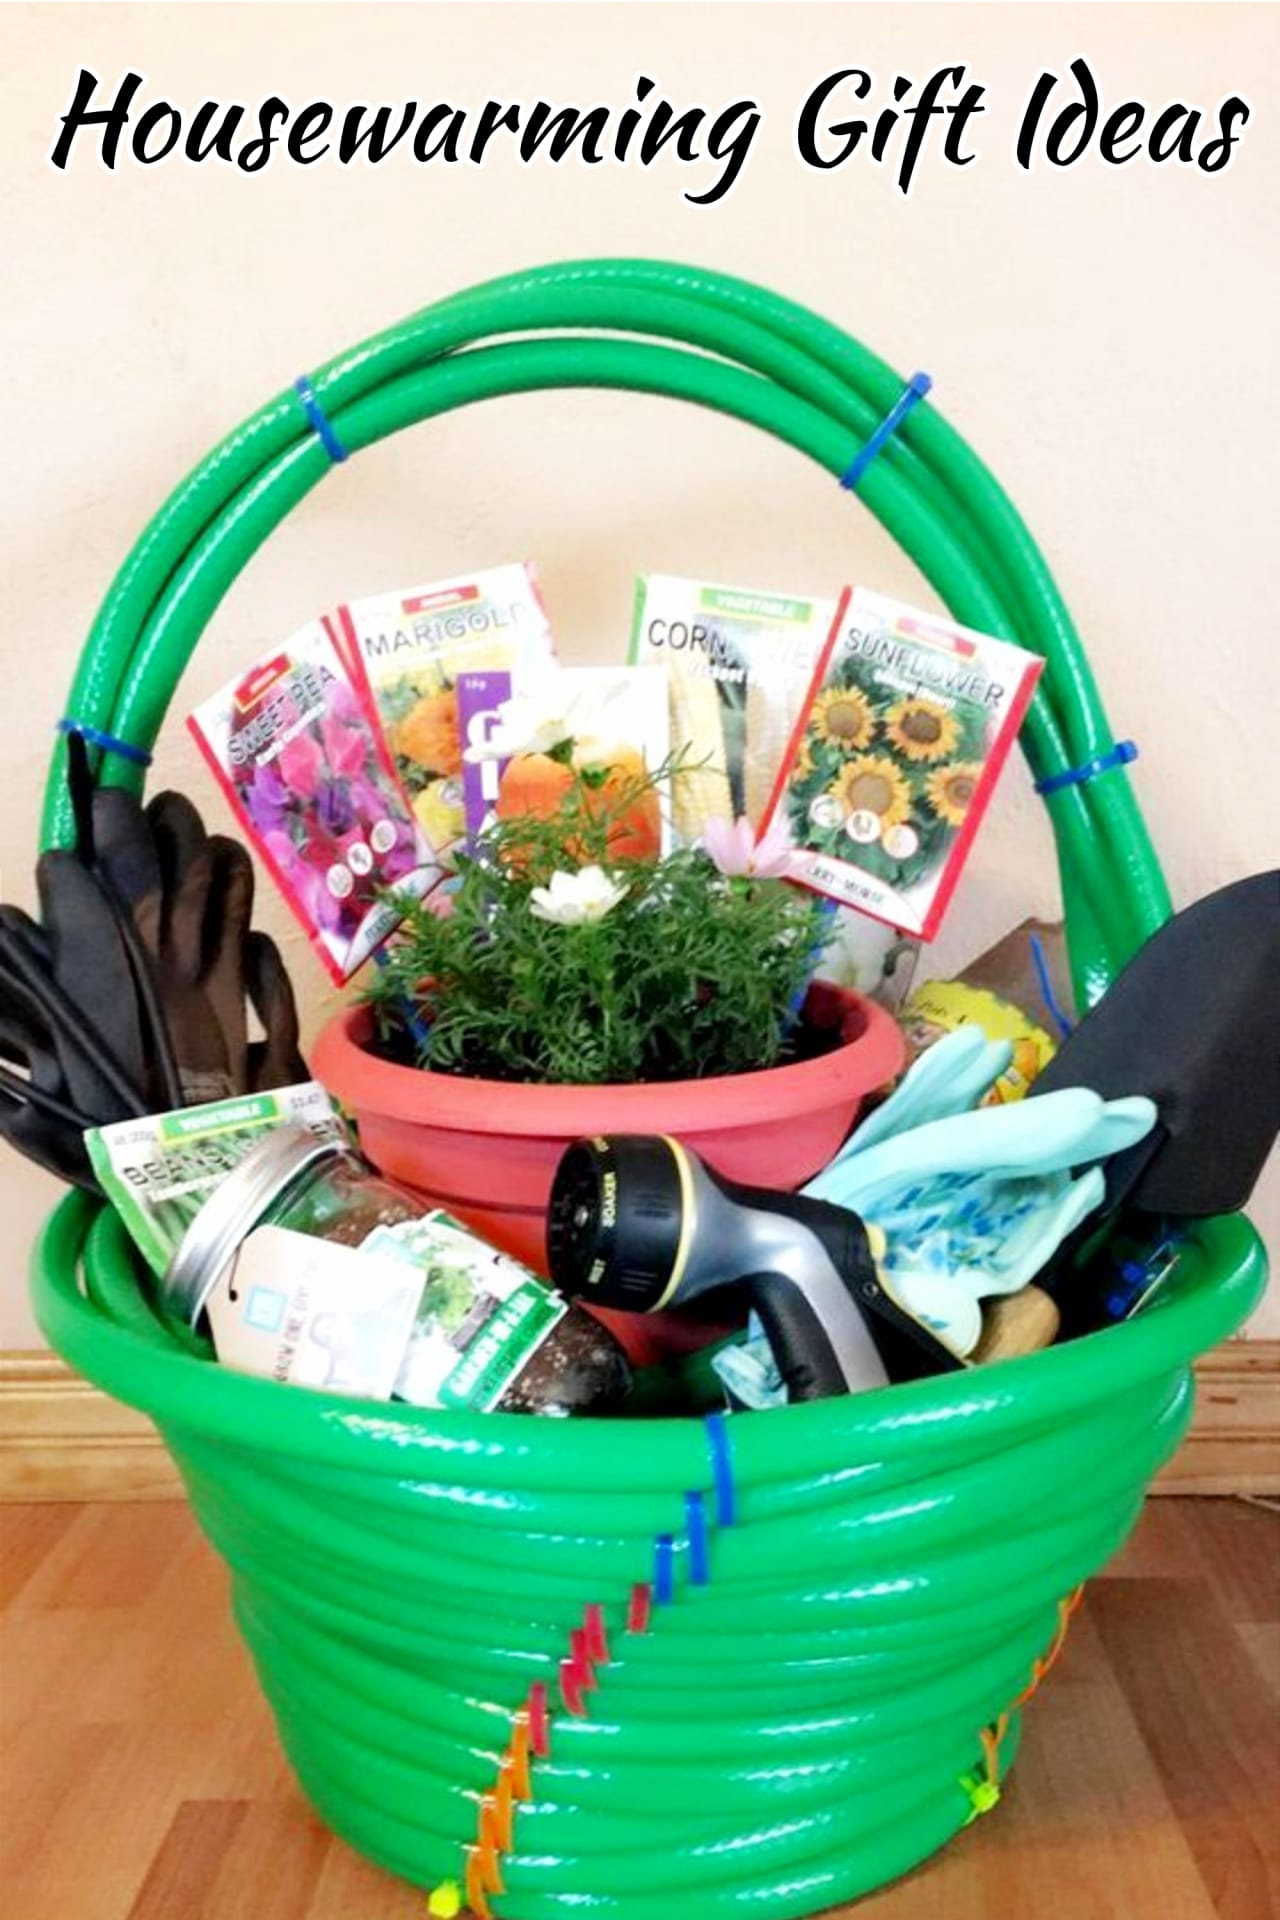 Housewarming Garden Gift Basket Ideas - Housewarming Gifts For First Time Homeowners in Their First Home -Unique Housewarming Gift Ideas and DIY Housewarming Gifts They'll Love - First Time Home Buyer Gift Basket